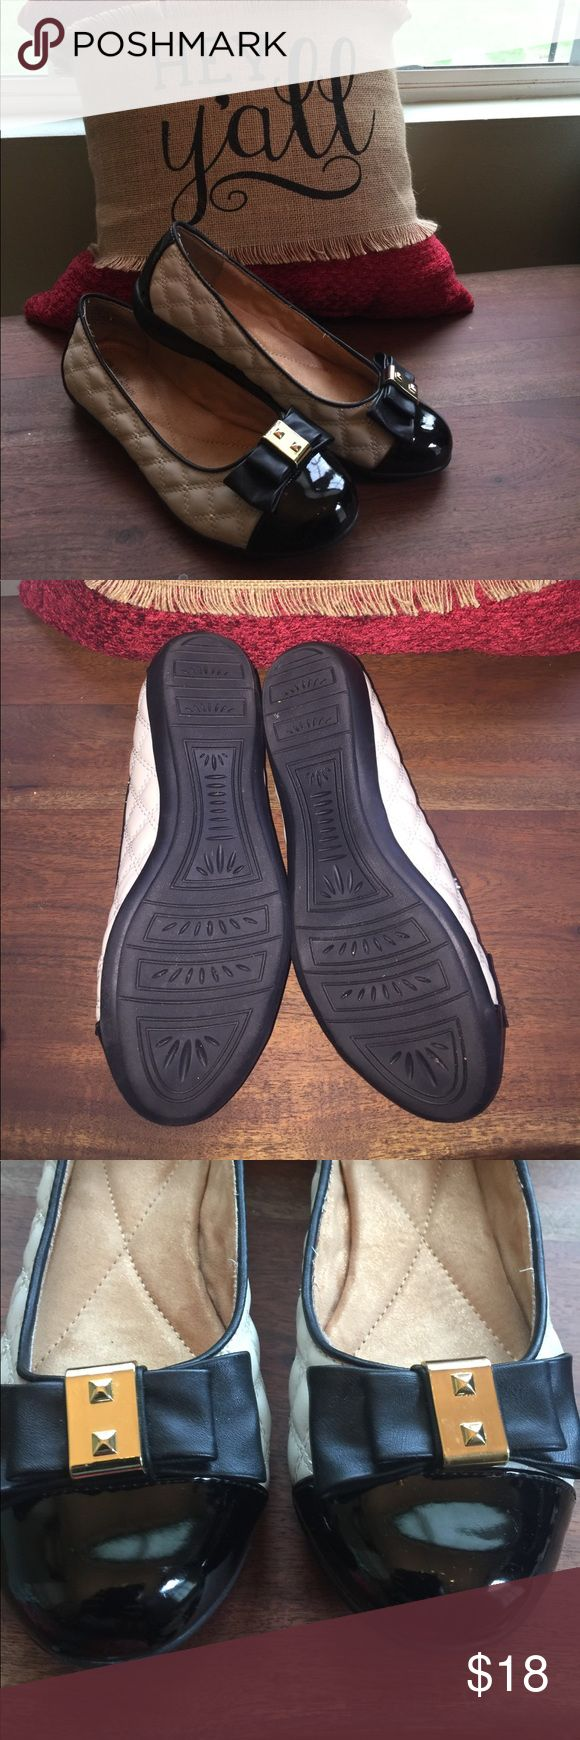 White Mountain Shoes Tan and black slip on flats.  Quilted with bow on toe. Worn one time. Excellent condition.  Size 8.5M White Mountain  Shoes Flats & Loafers